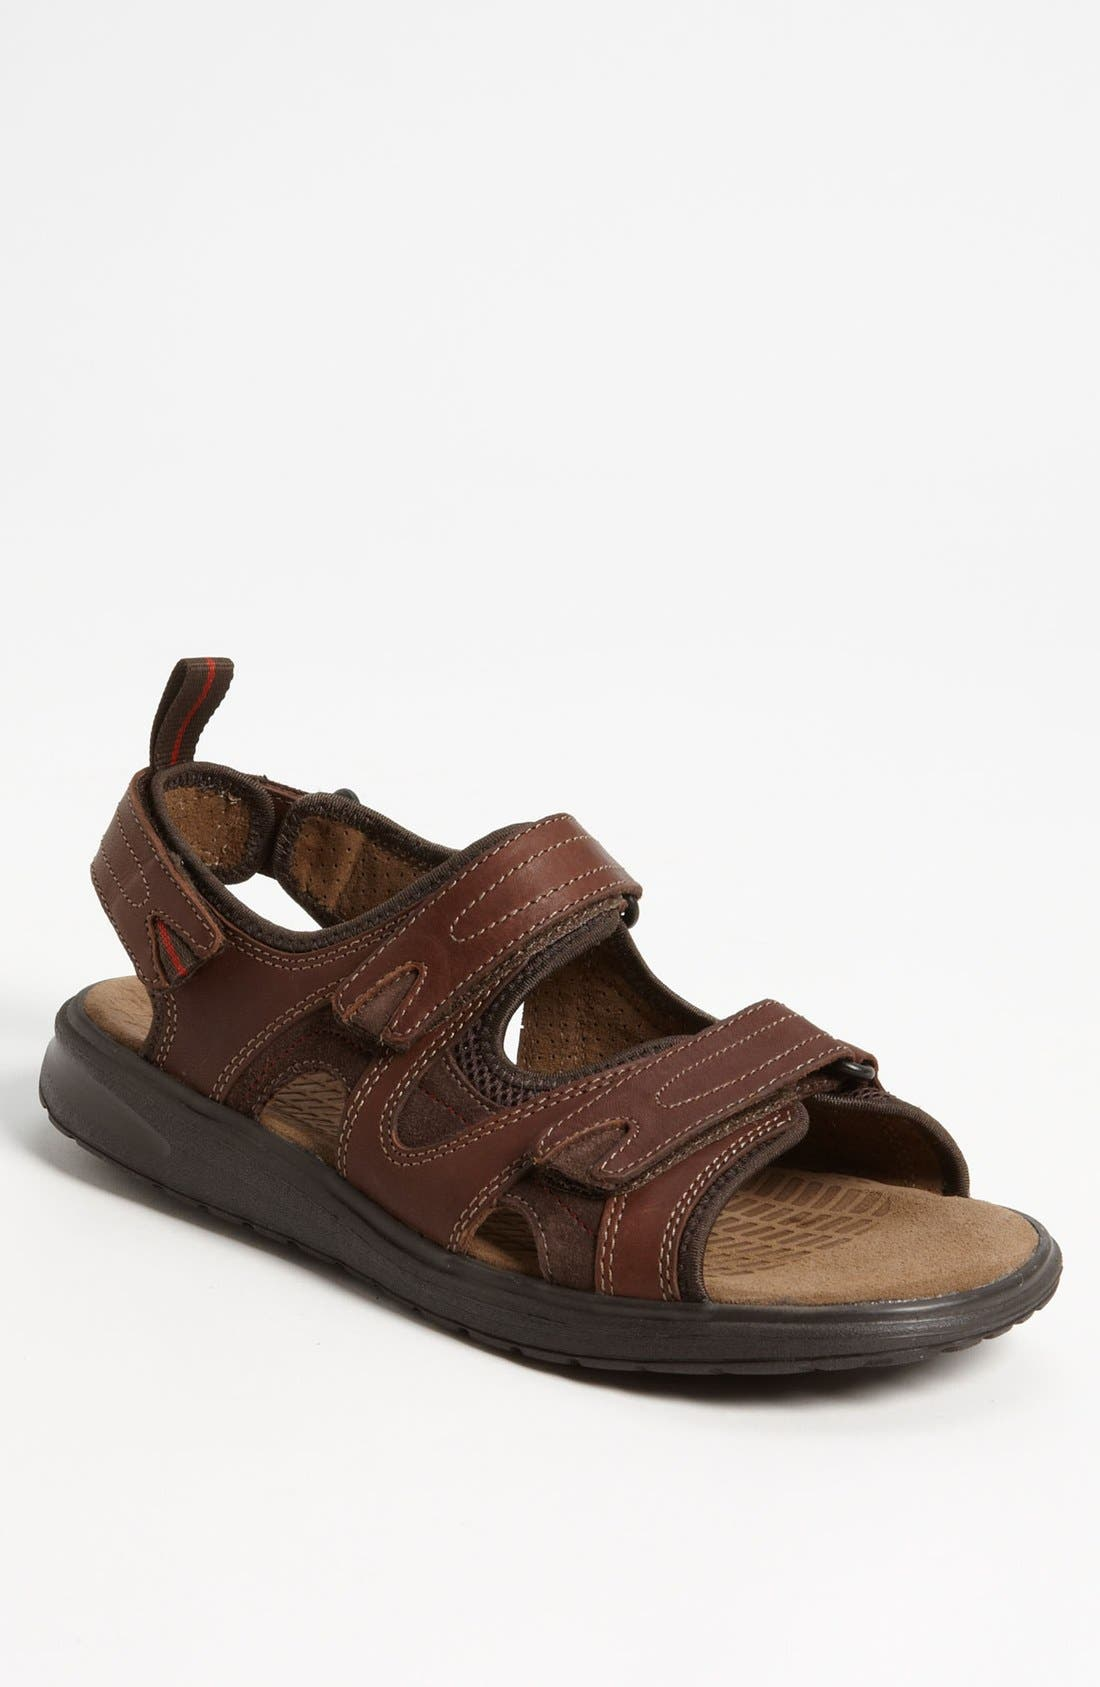 Alternate Image 1 Selected - Clarks® 'Unstructured - Caicos' Sandal   (Men)